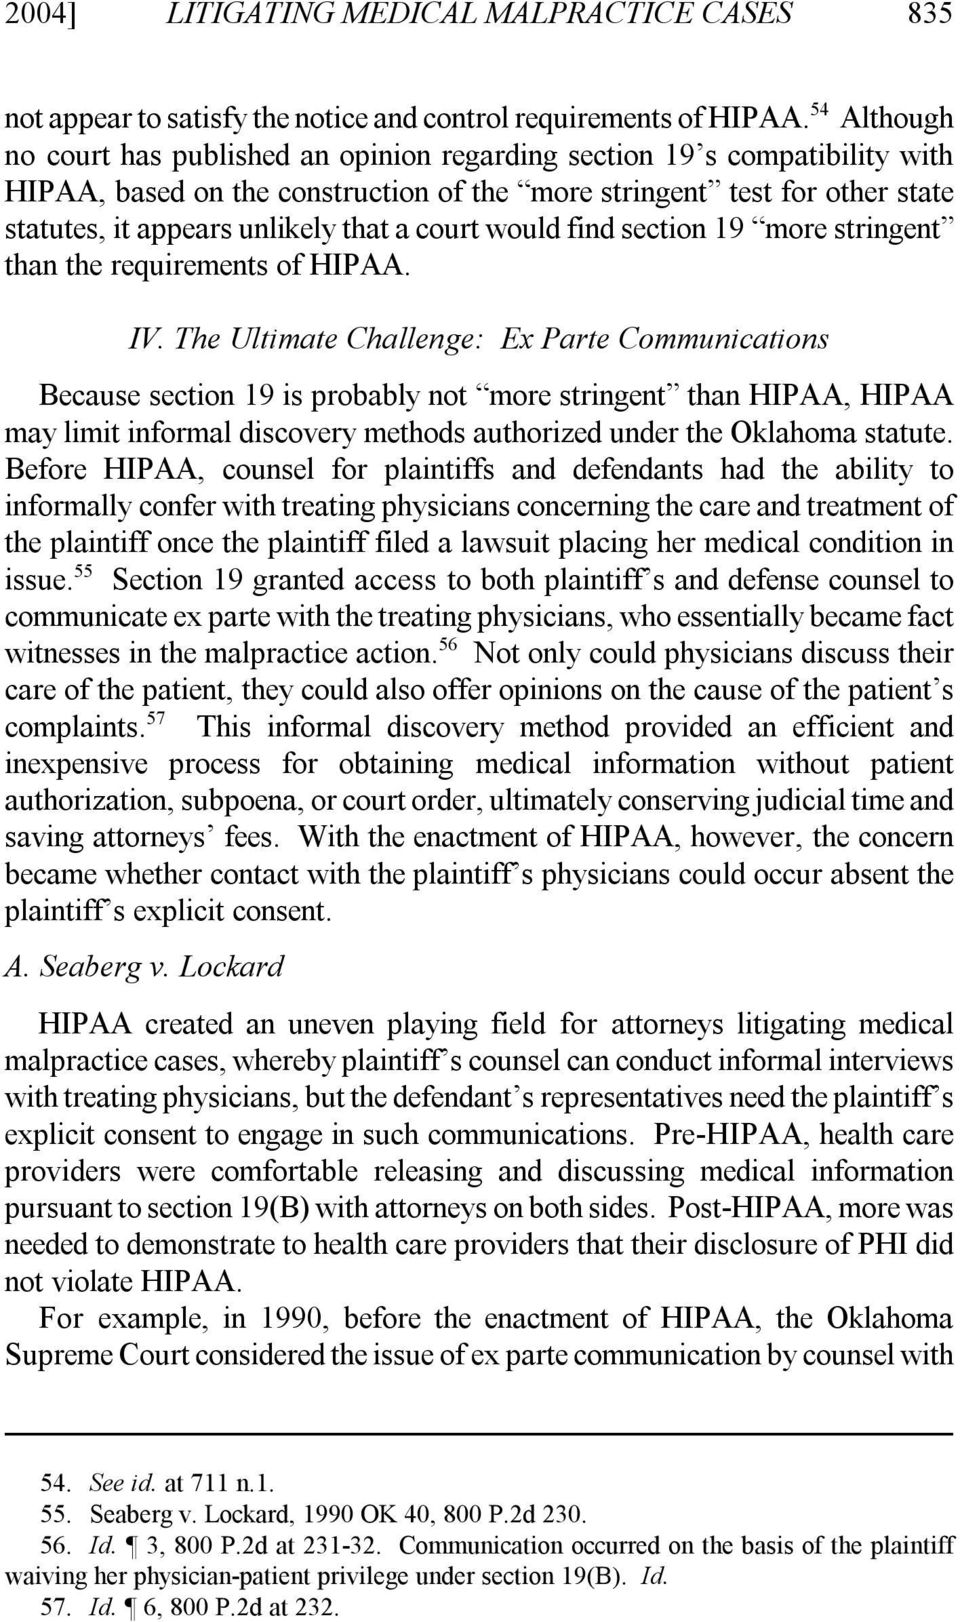 a court would find section 19 more stringent than the requirements of HIPAA. IV.